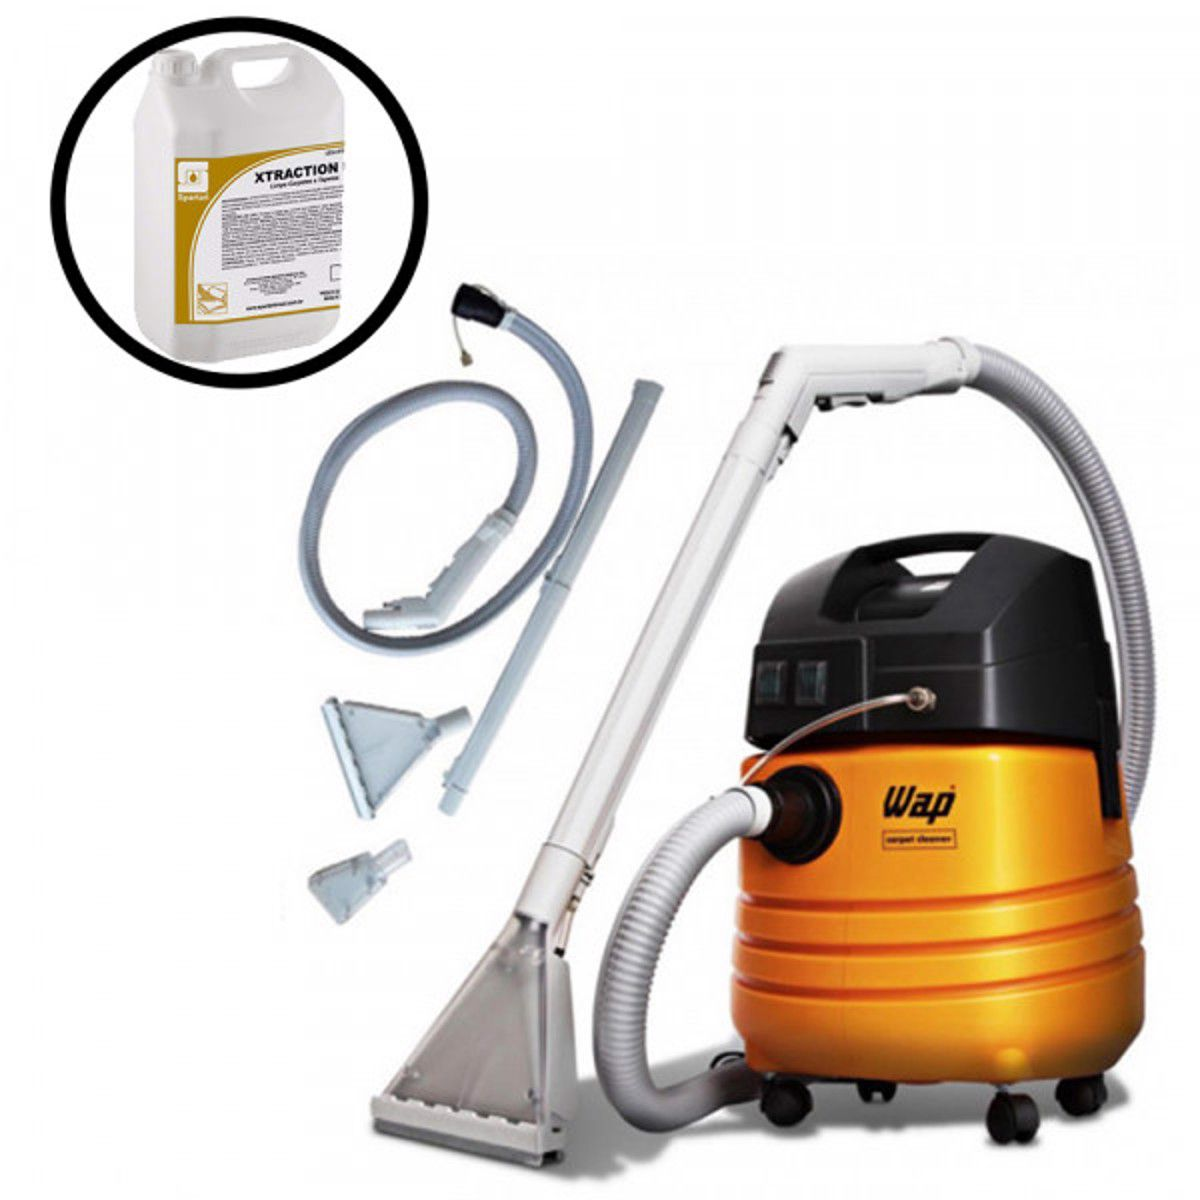 EXTRATORA WAP CARPET CLEANER COM DETERGENTE XTRACTION 5 LITROS